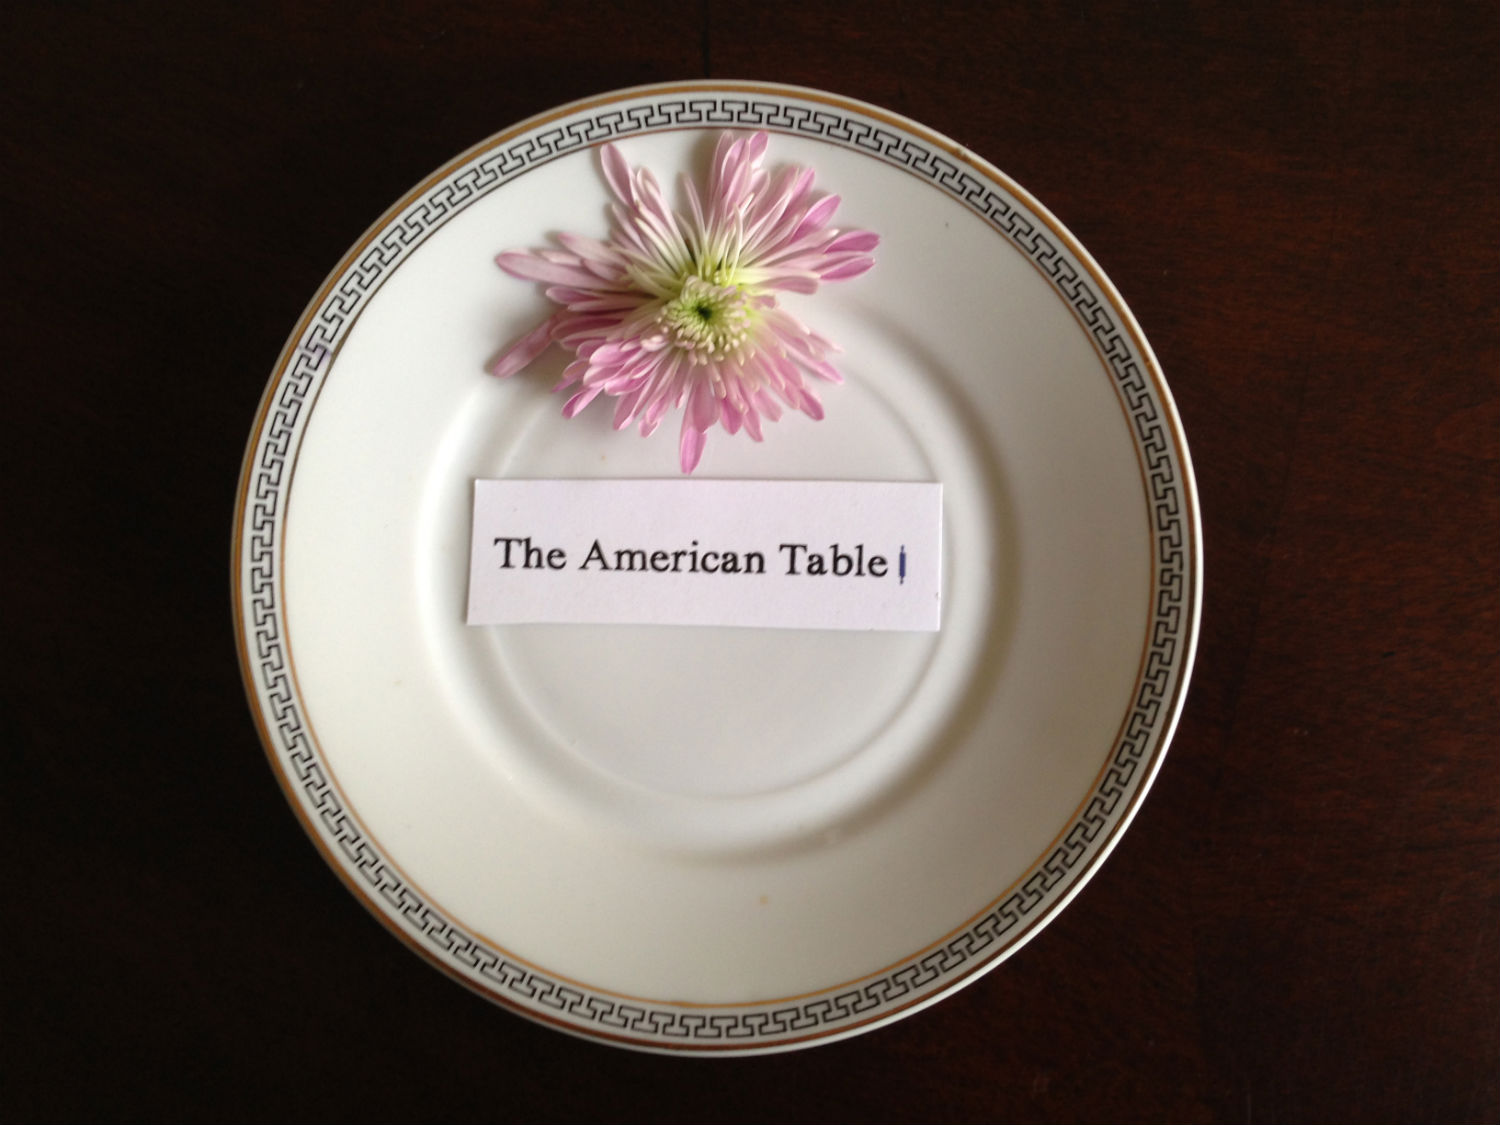 American Table - Plate